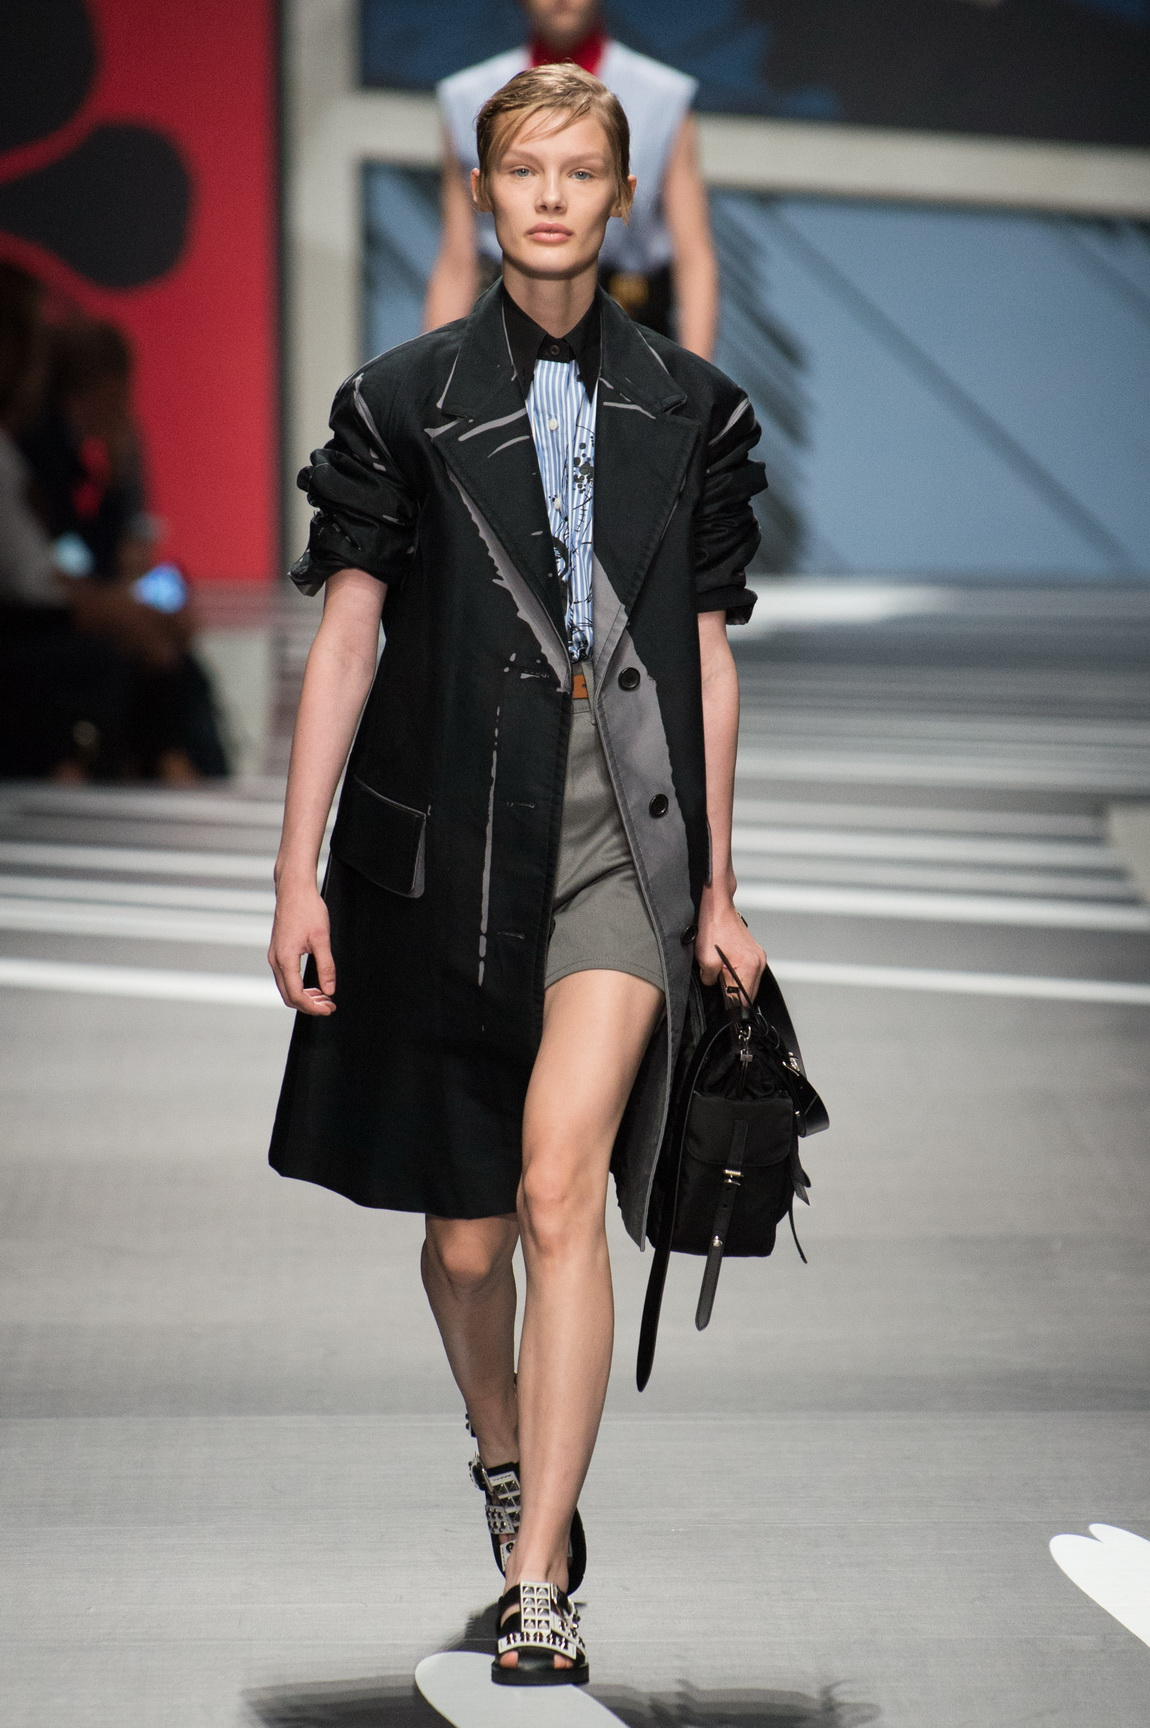 39fe8cfbdfb6 prada and moschino fight for the female cause - i-D